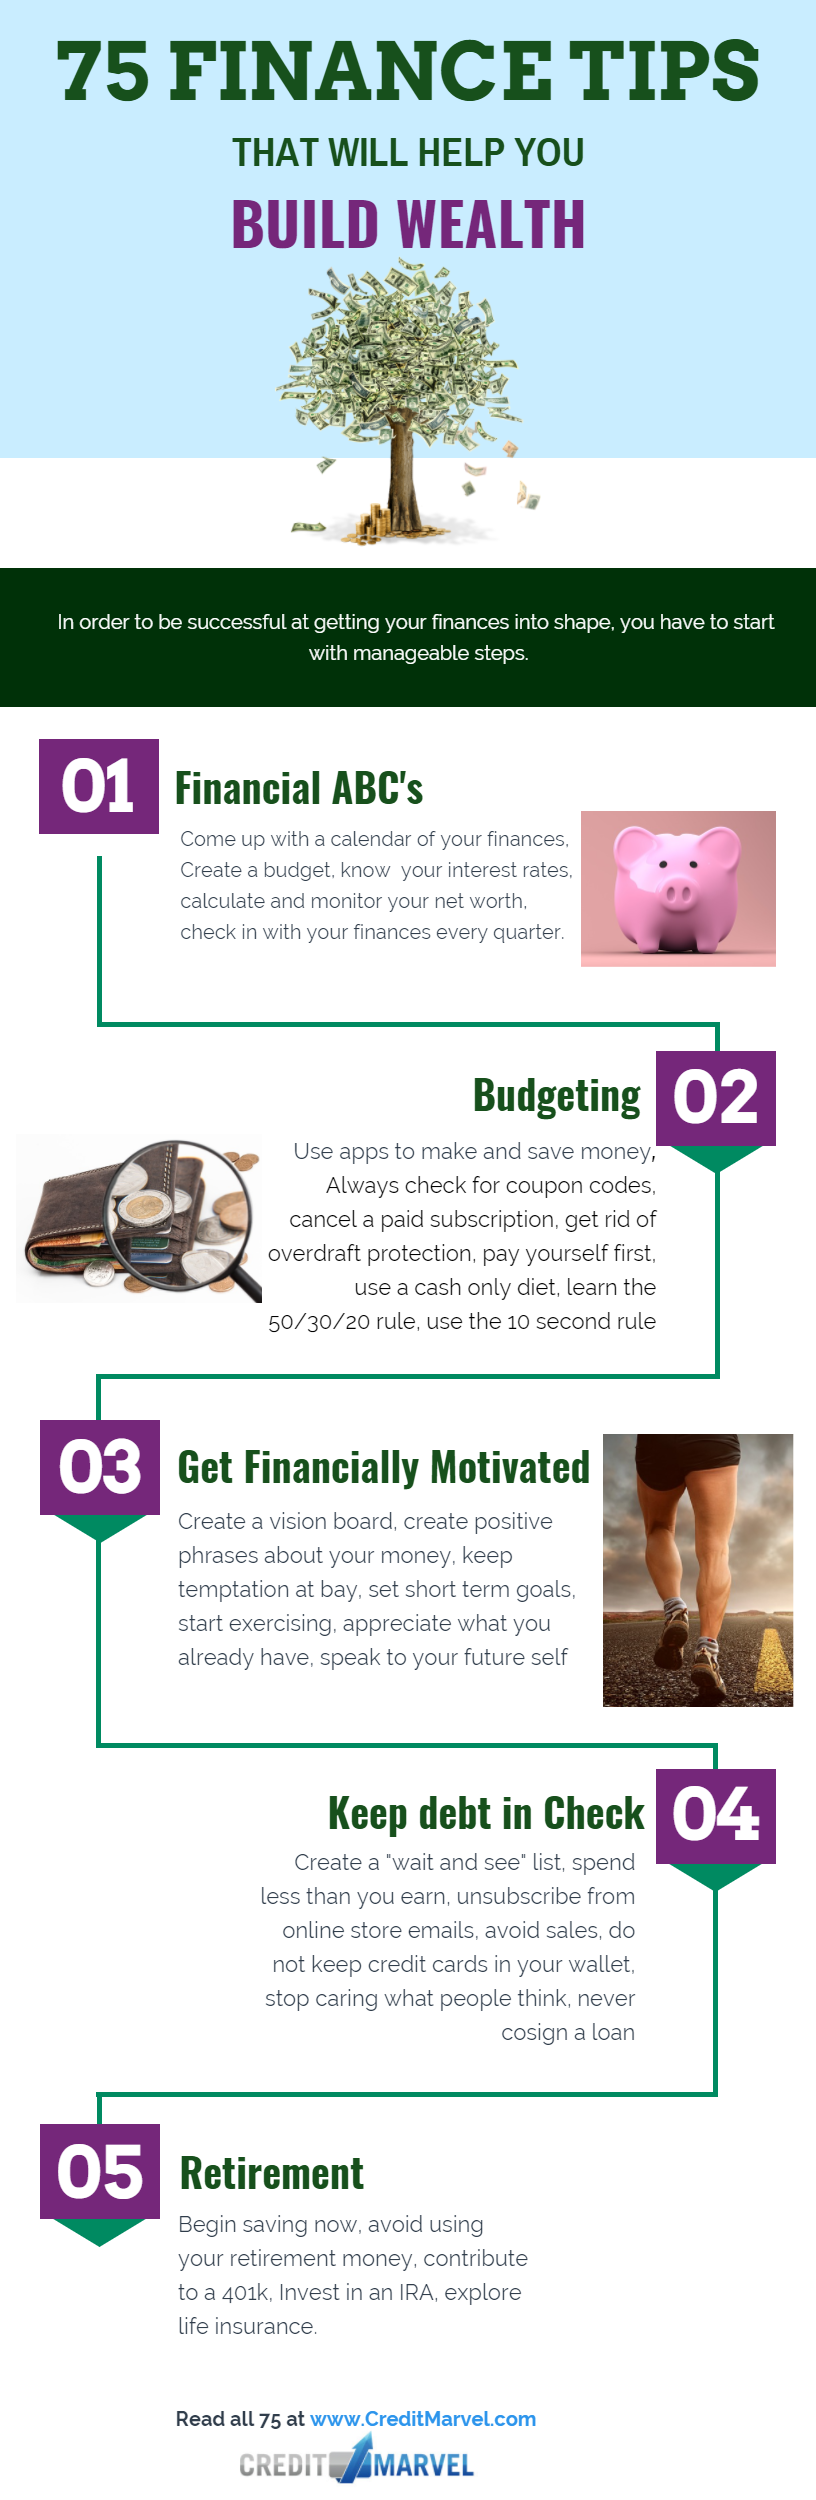 tips to build financial wealth